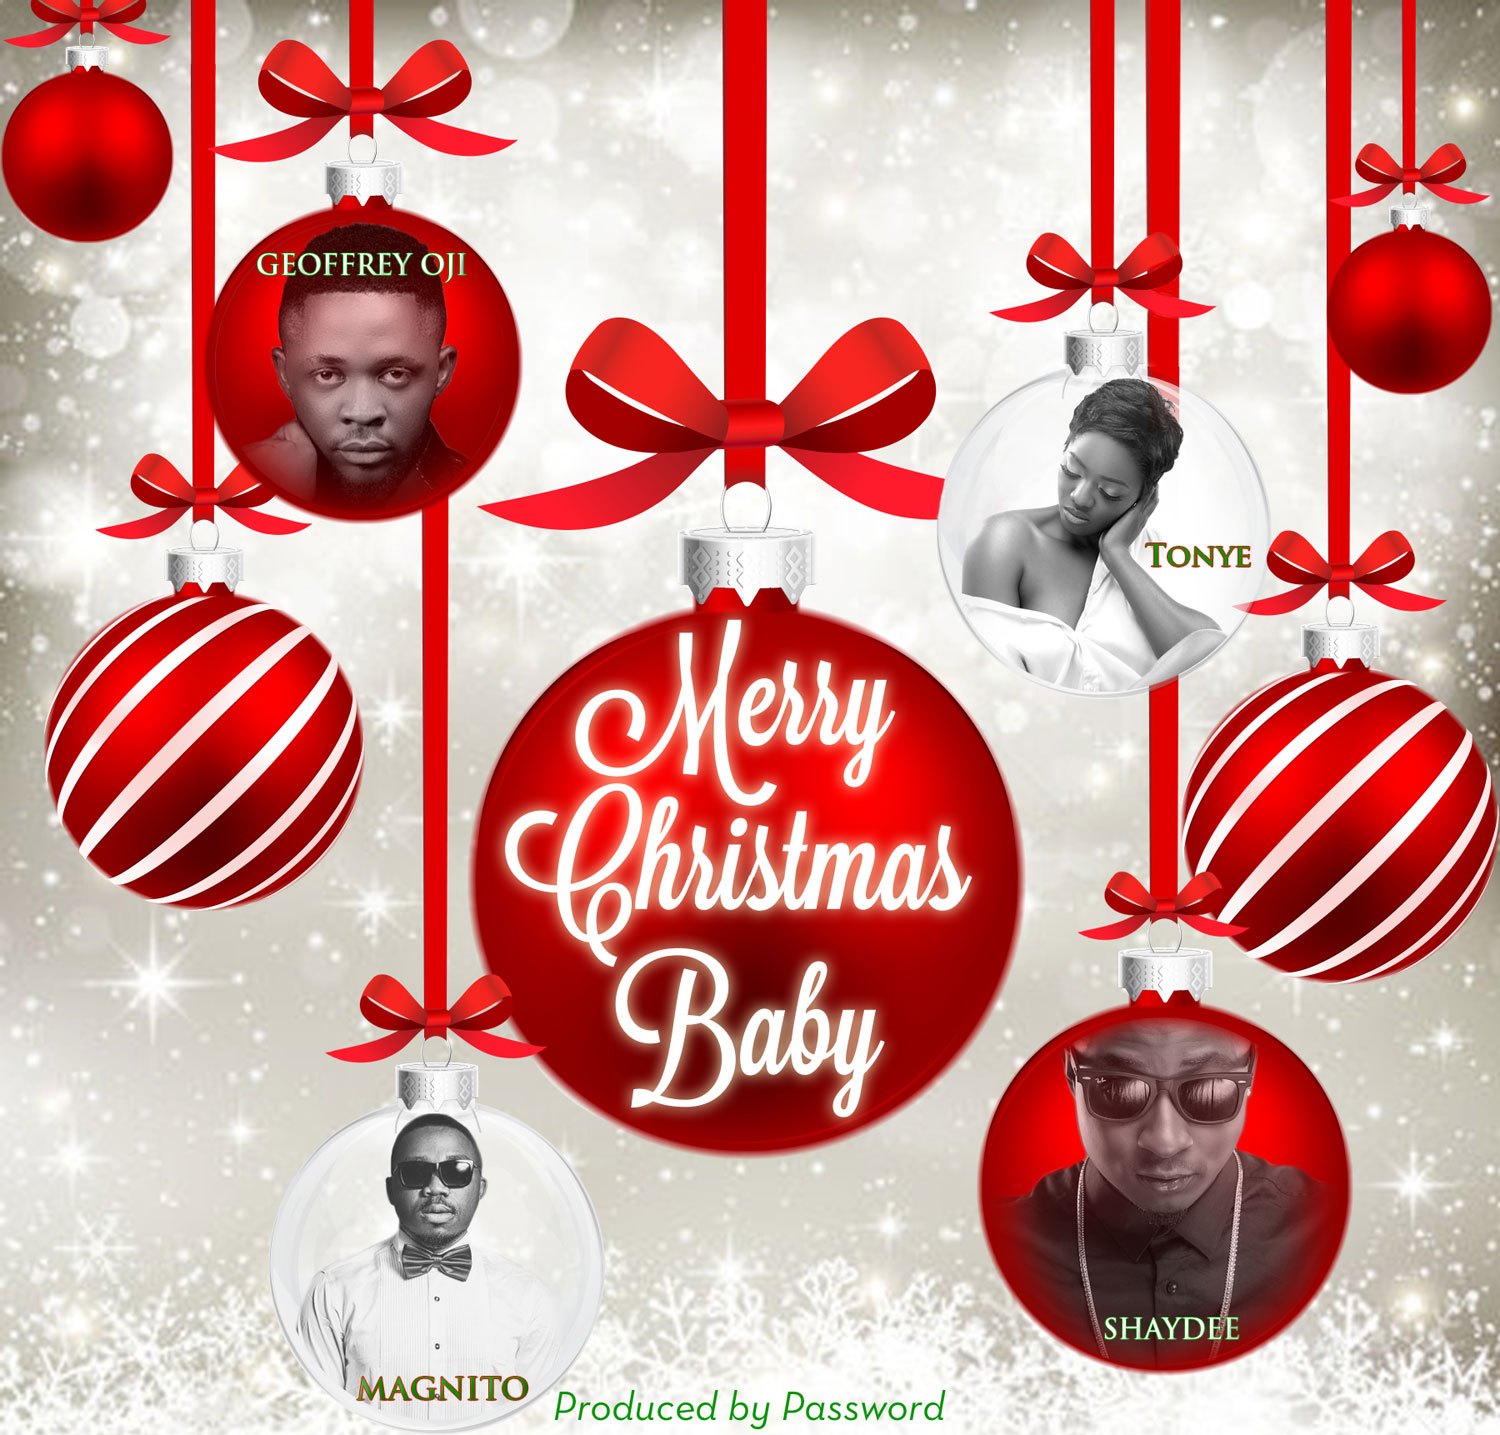 this new christmas tune merry christmas baby is an original composition that puts a modern naija pop twist to the festive season